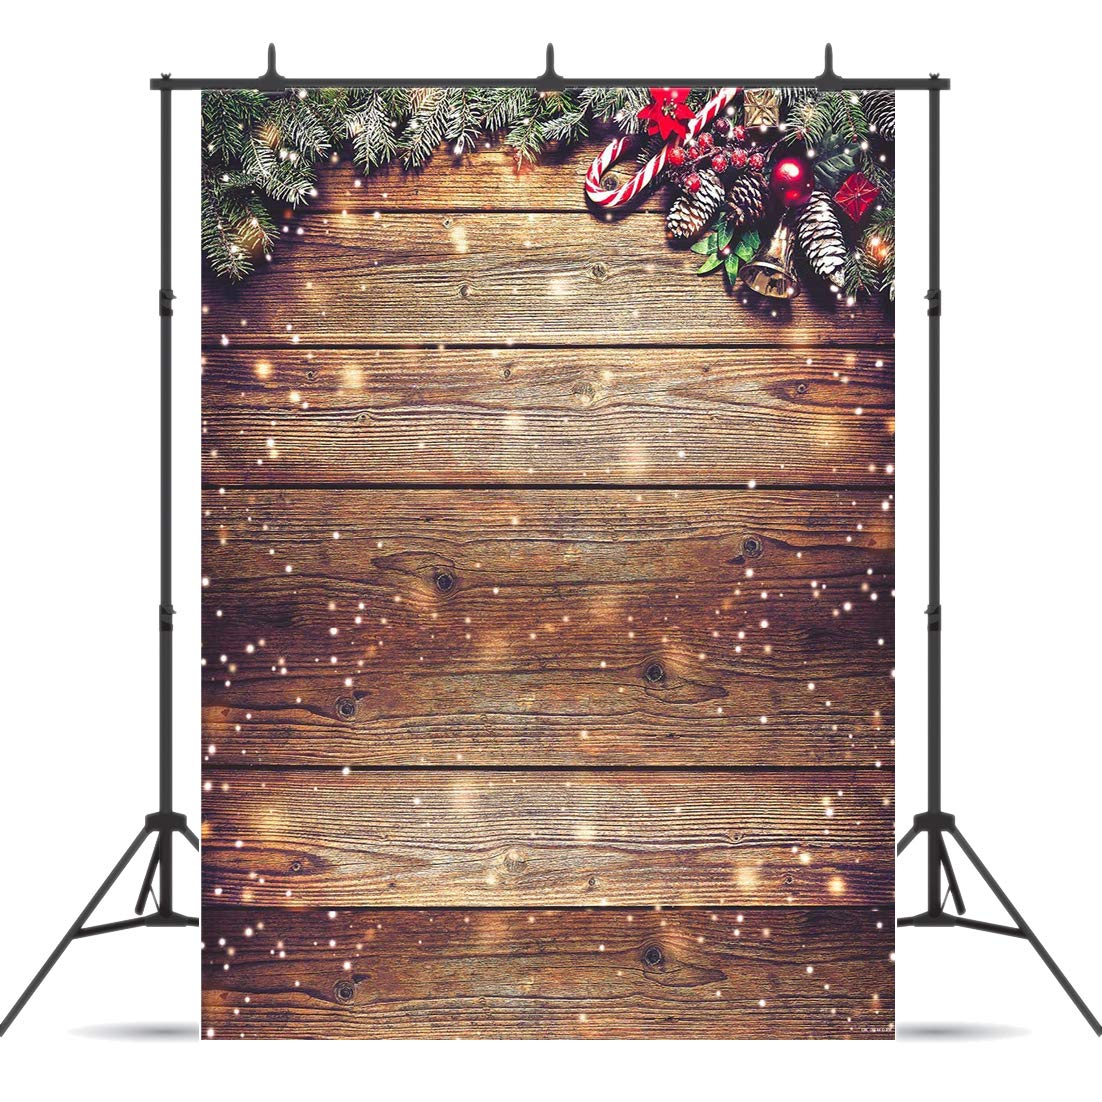 Dudaacvt 10x10ft Beautiful Christmas Theme Pictorial Cloth Customized Photography Backdrop Background Studio Prop D0461010